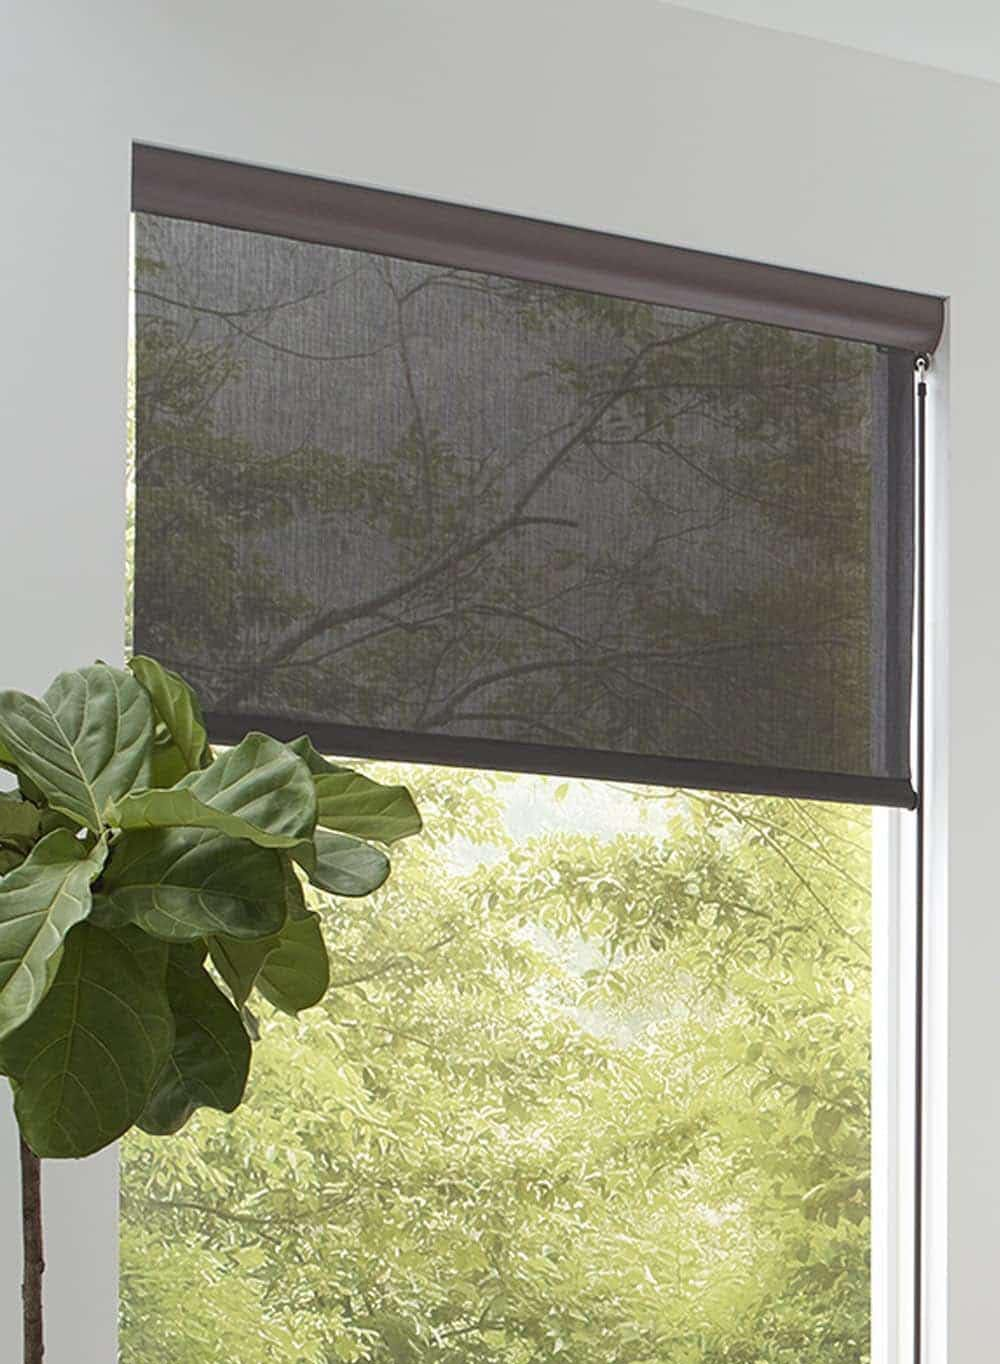 A dark brown outdoor shade partially lowered in a window of a covered patio area.